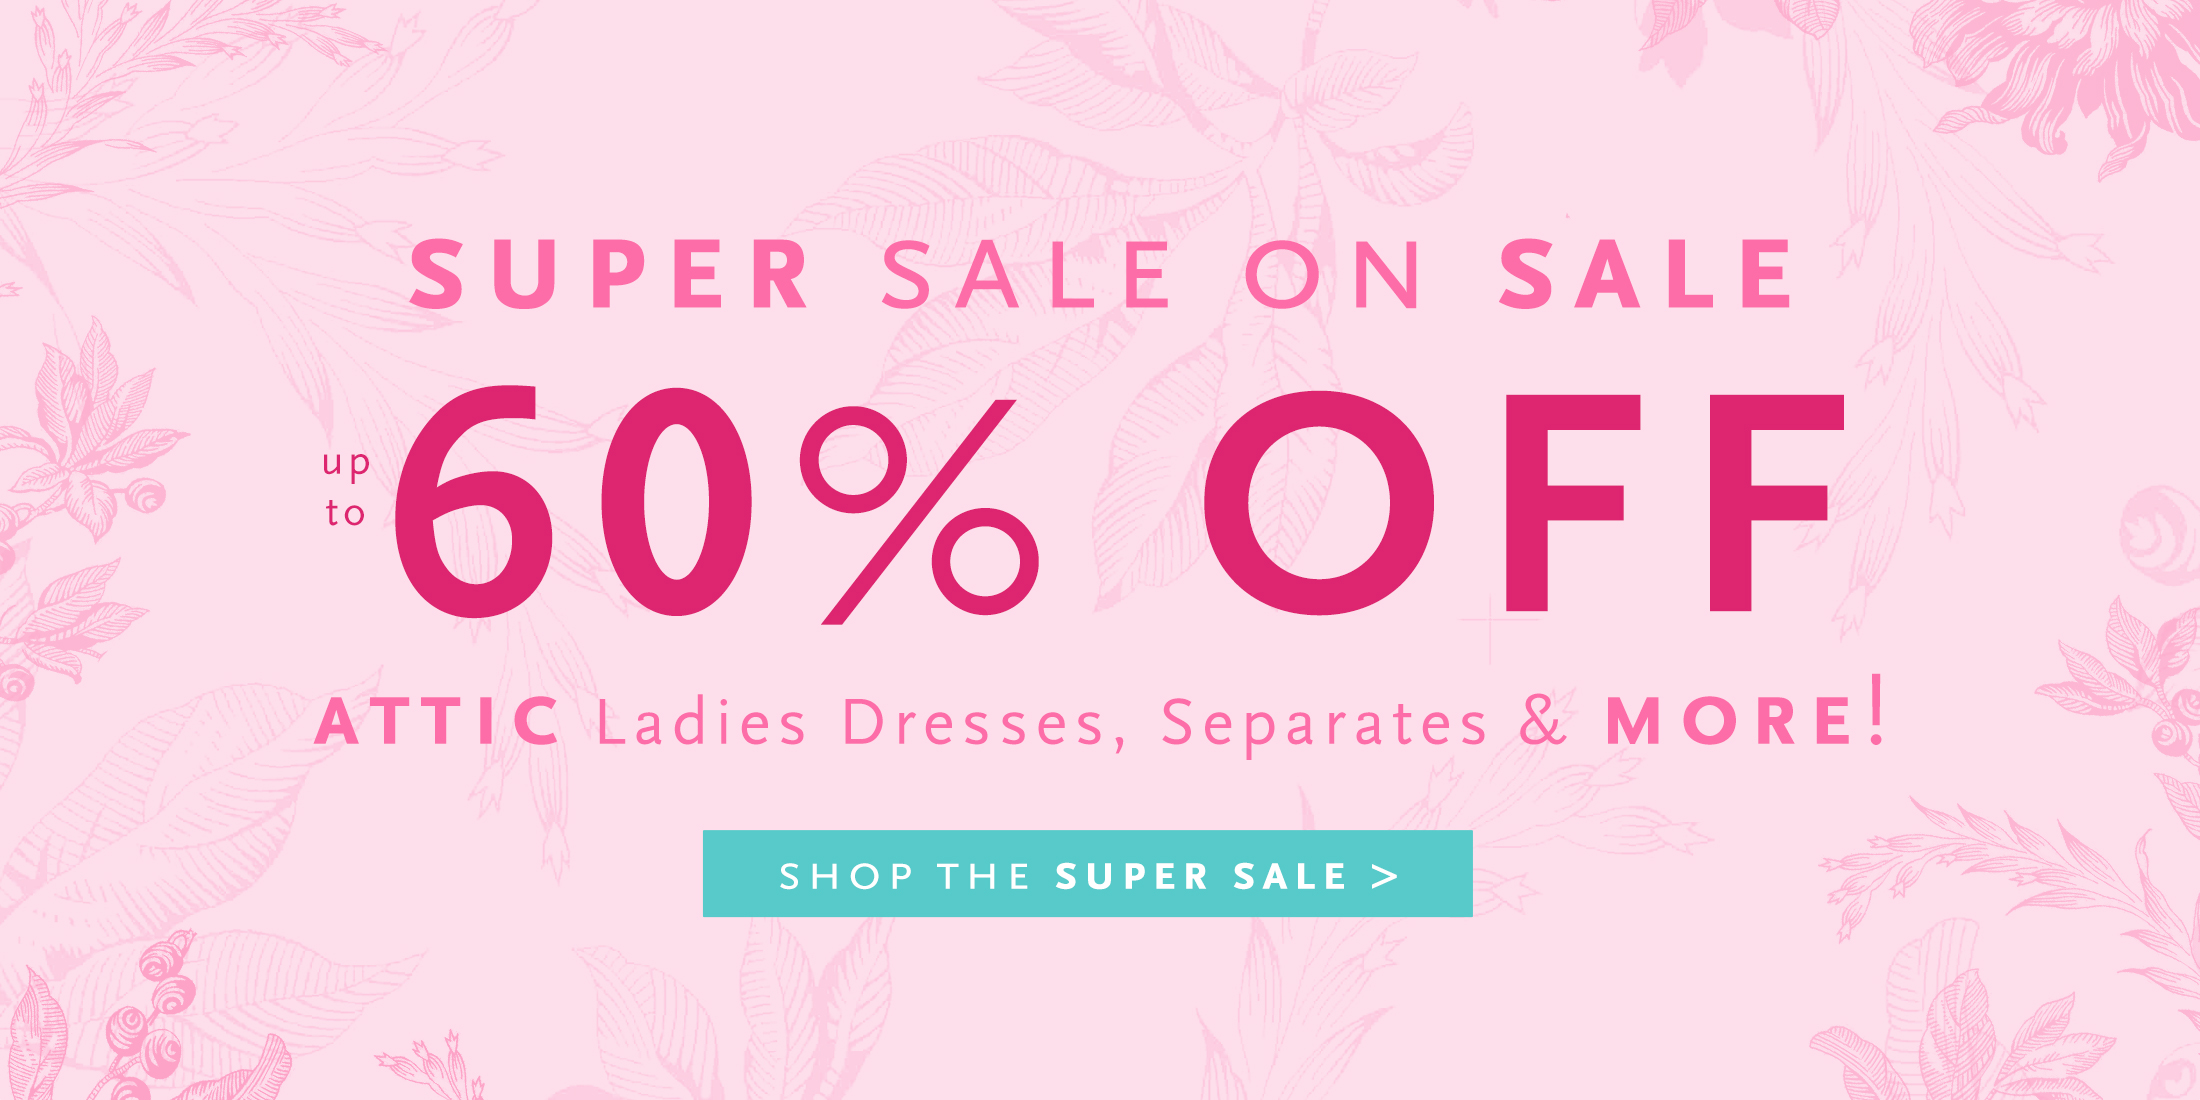 Up to 60% off ALL ladies dresses, separates and MORE!